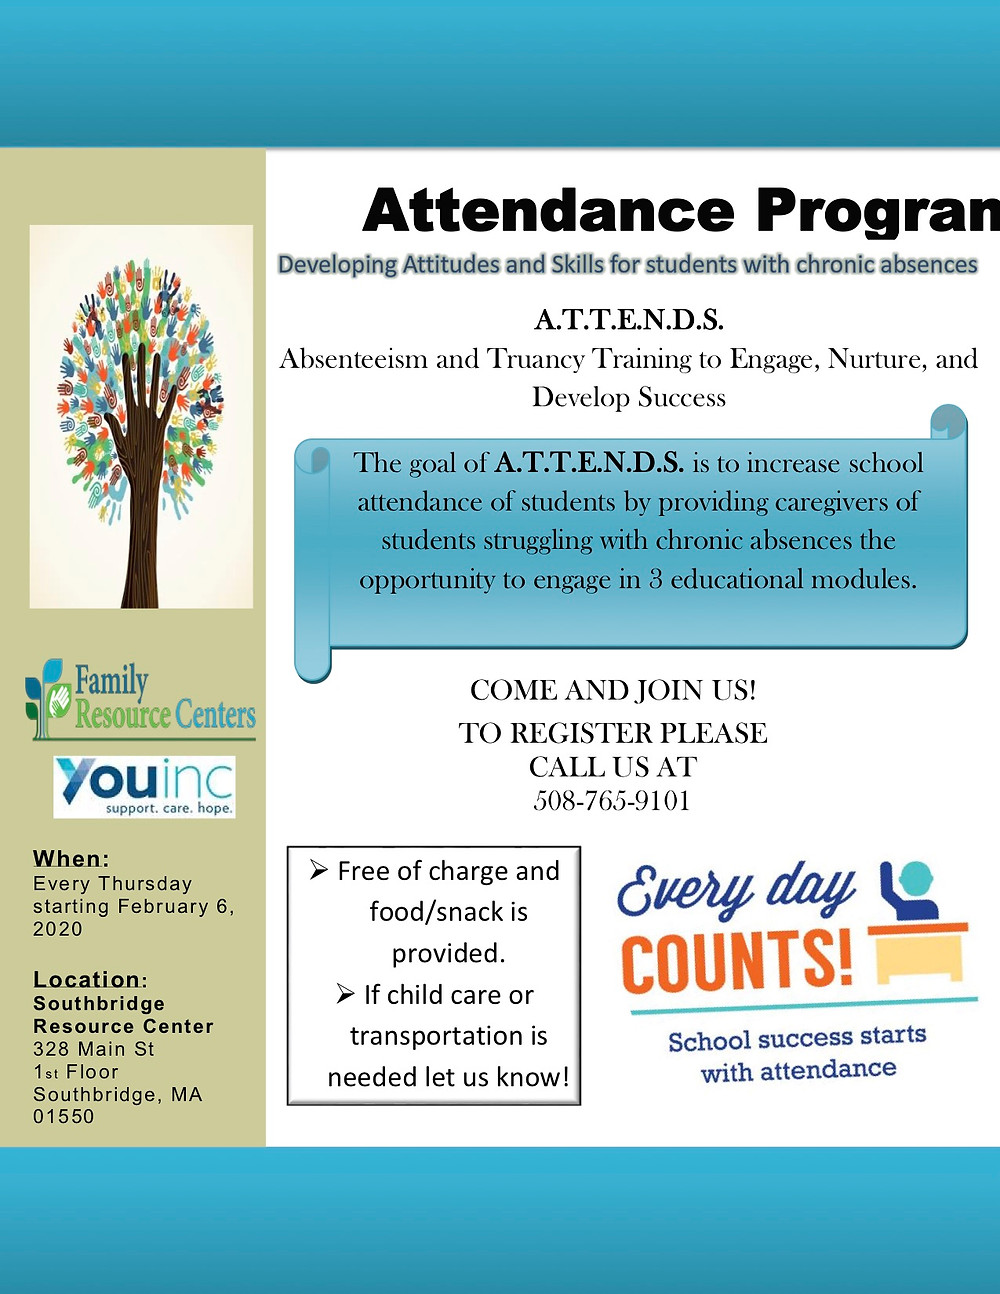 Flyer for a local program promoting school attendance in Spanish